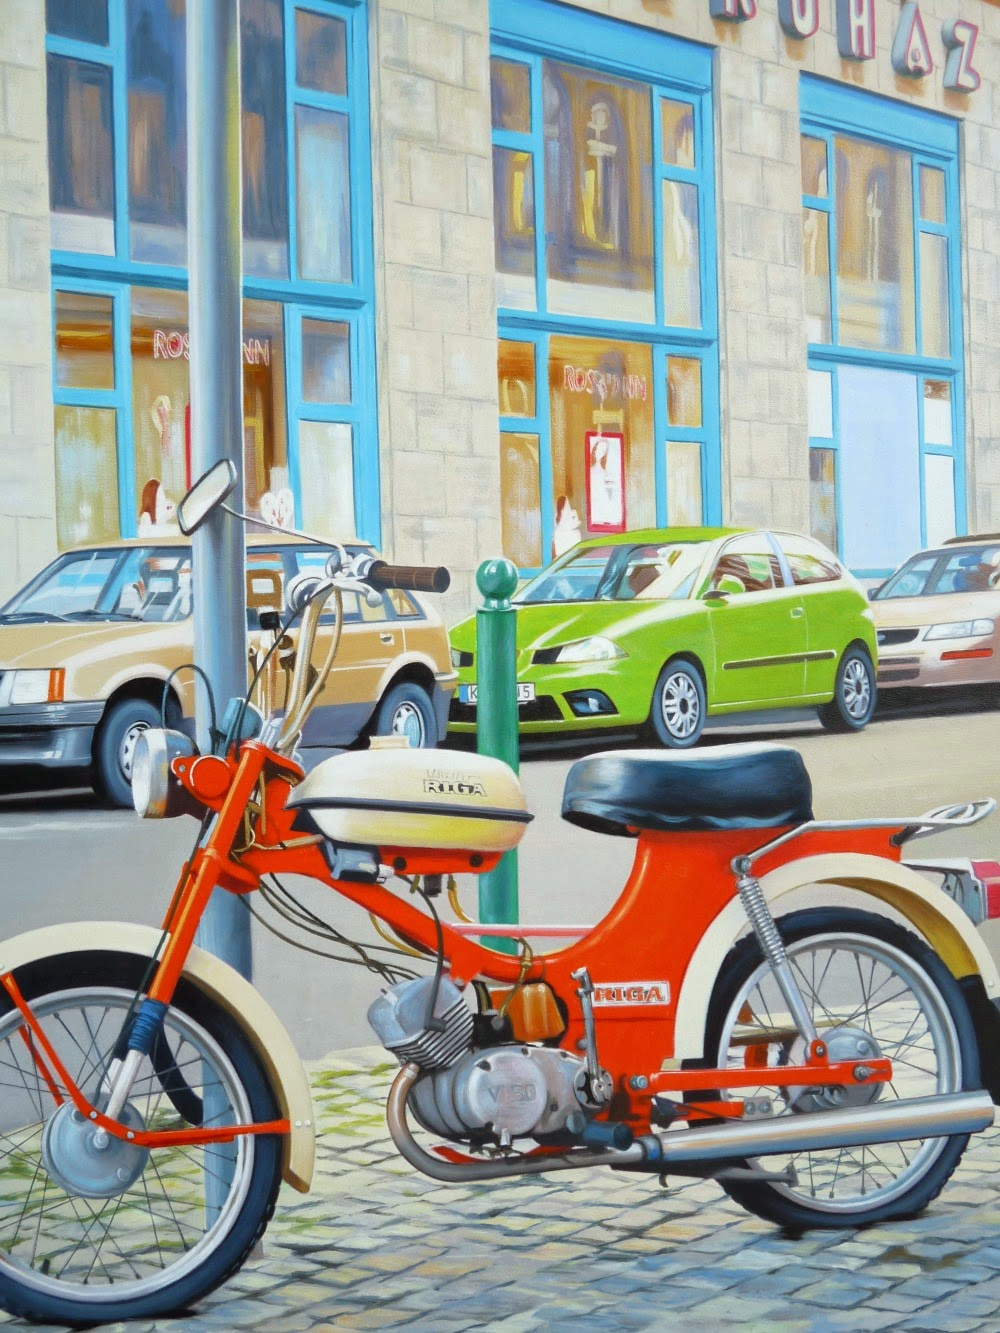 How to turn a favorite photo into an oil painting